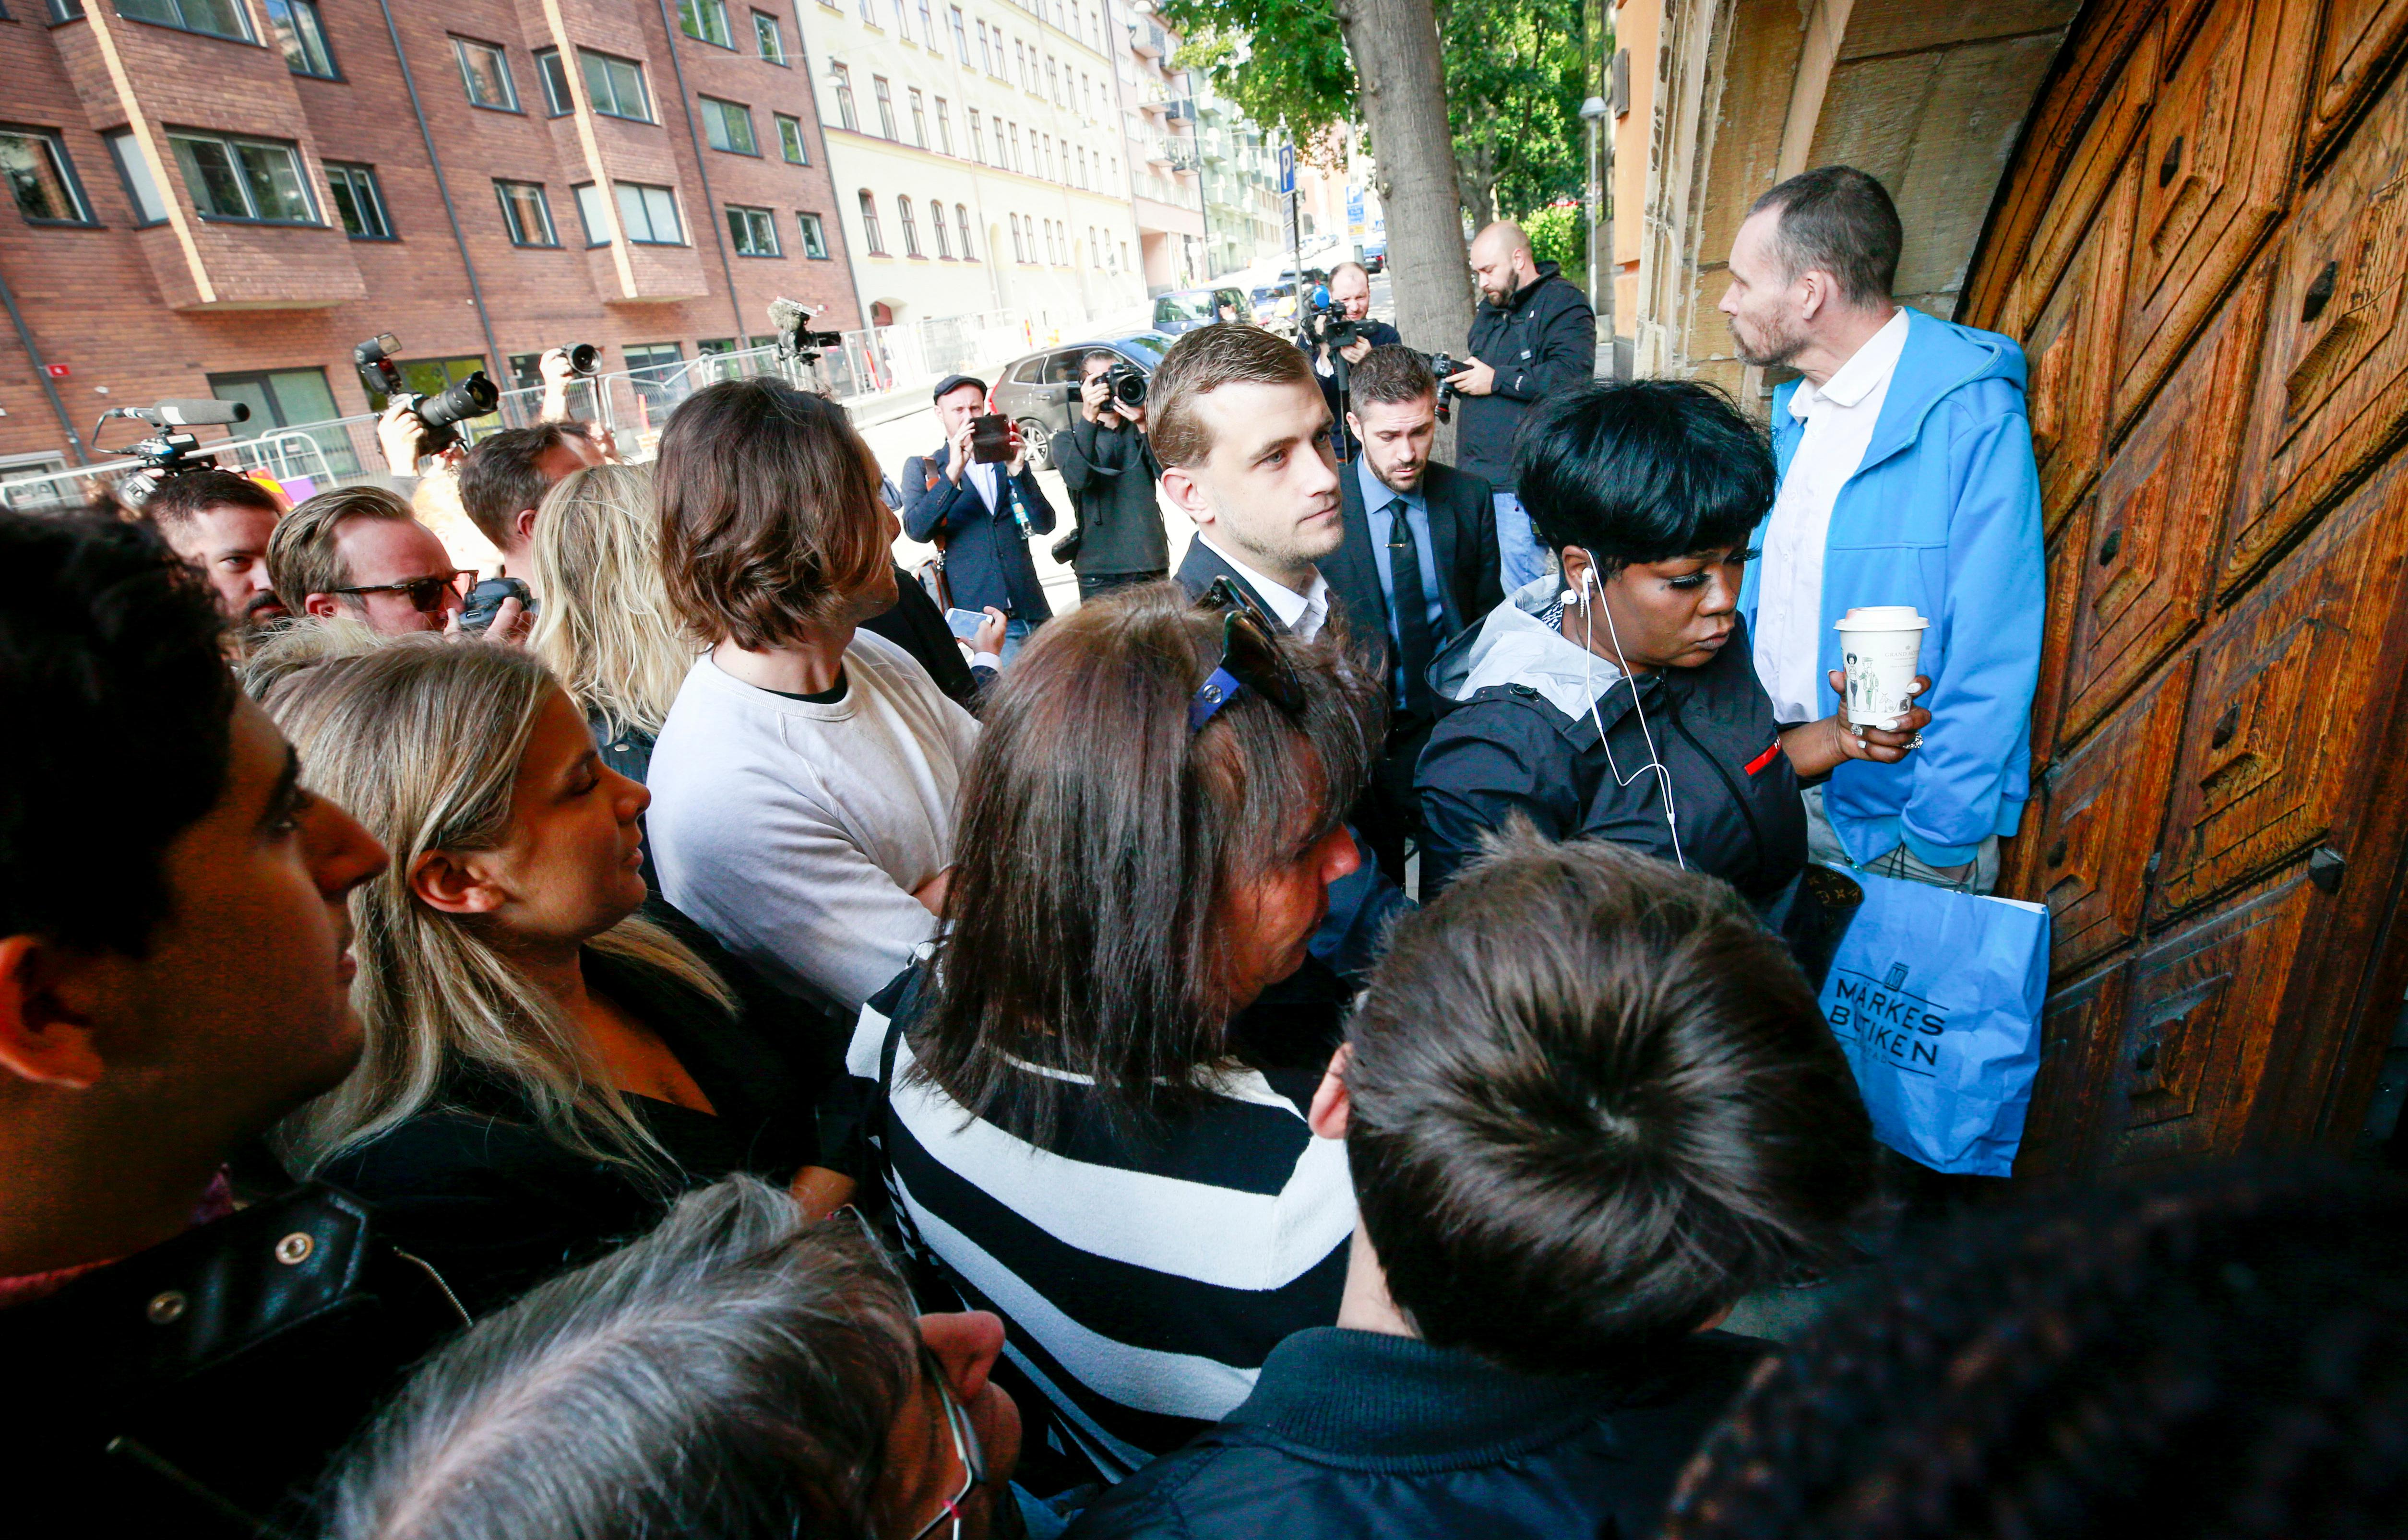 Renee Black, mother of ASAP Rocky, right, arrives at the district court in Stockholm, Thursday Aug. 1, 2019. American rapper A$AP Rocky pleaded not guilty to assault as his trial in Sweden opened Tuesday, a month after a street fight that landed him in jail and became a topic of U.S.-Swedish diplomacy. (Fredrik Persson/TT News Agency via AP)